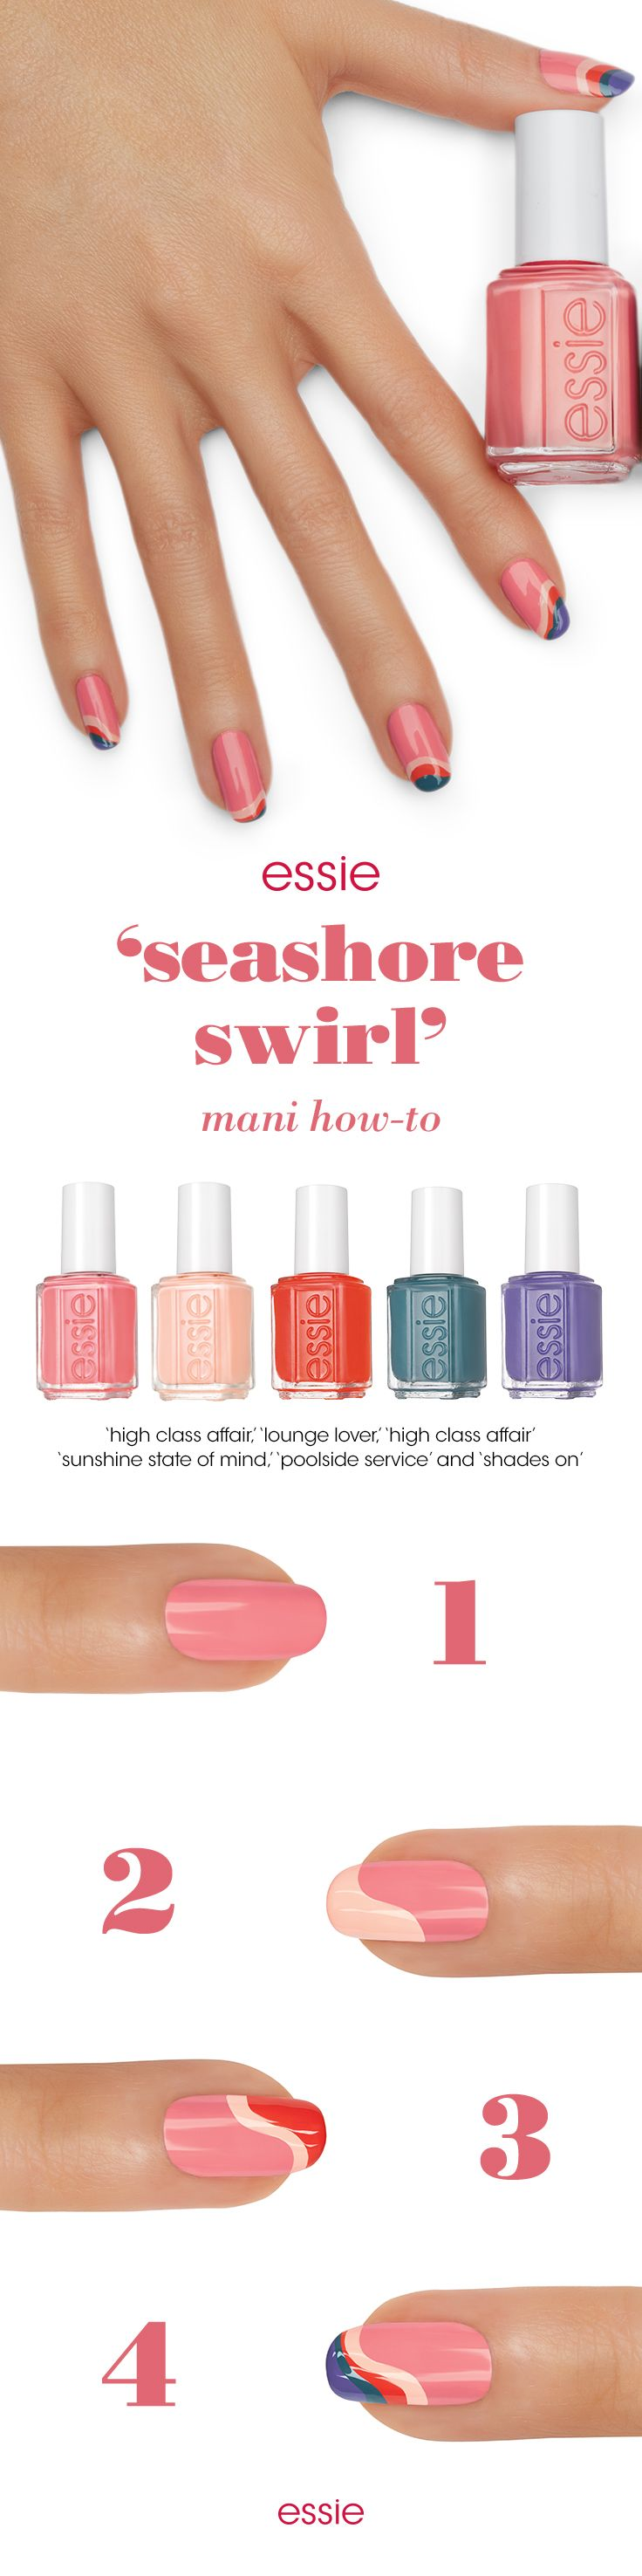 Between the sand and the sea is where I'll be. Recreate this 'seashore swirl' nail art mani designed by essie's Global Lead Educator, Rita Remark using the bold colors from the Spring 2016 collection.    Rita's Tips:  Create different sized waves on each nail.  For some nails use all 4 colors for the design, and others just 2 or 3.